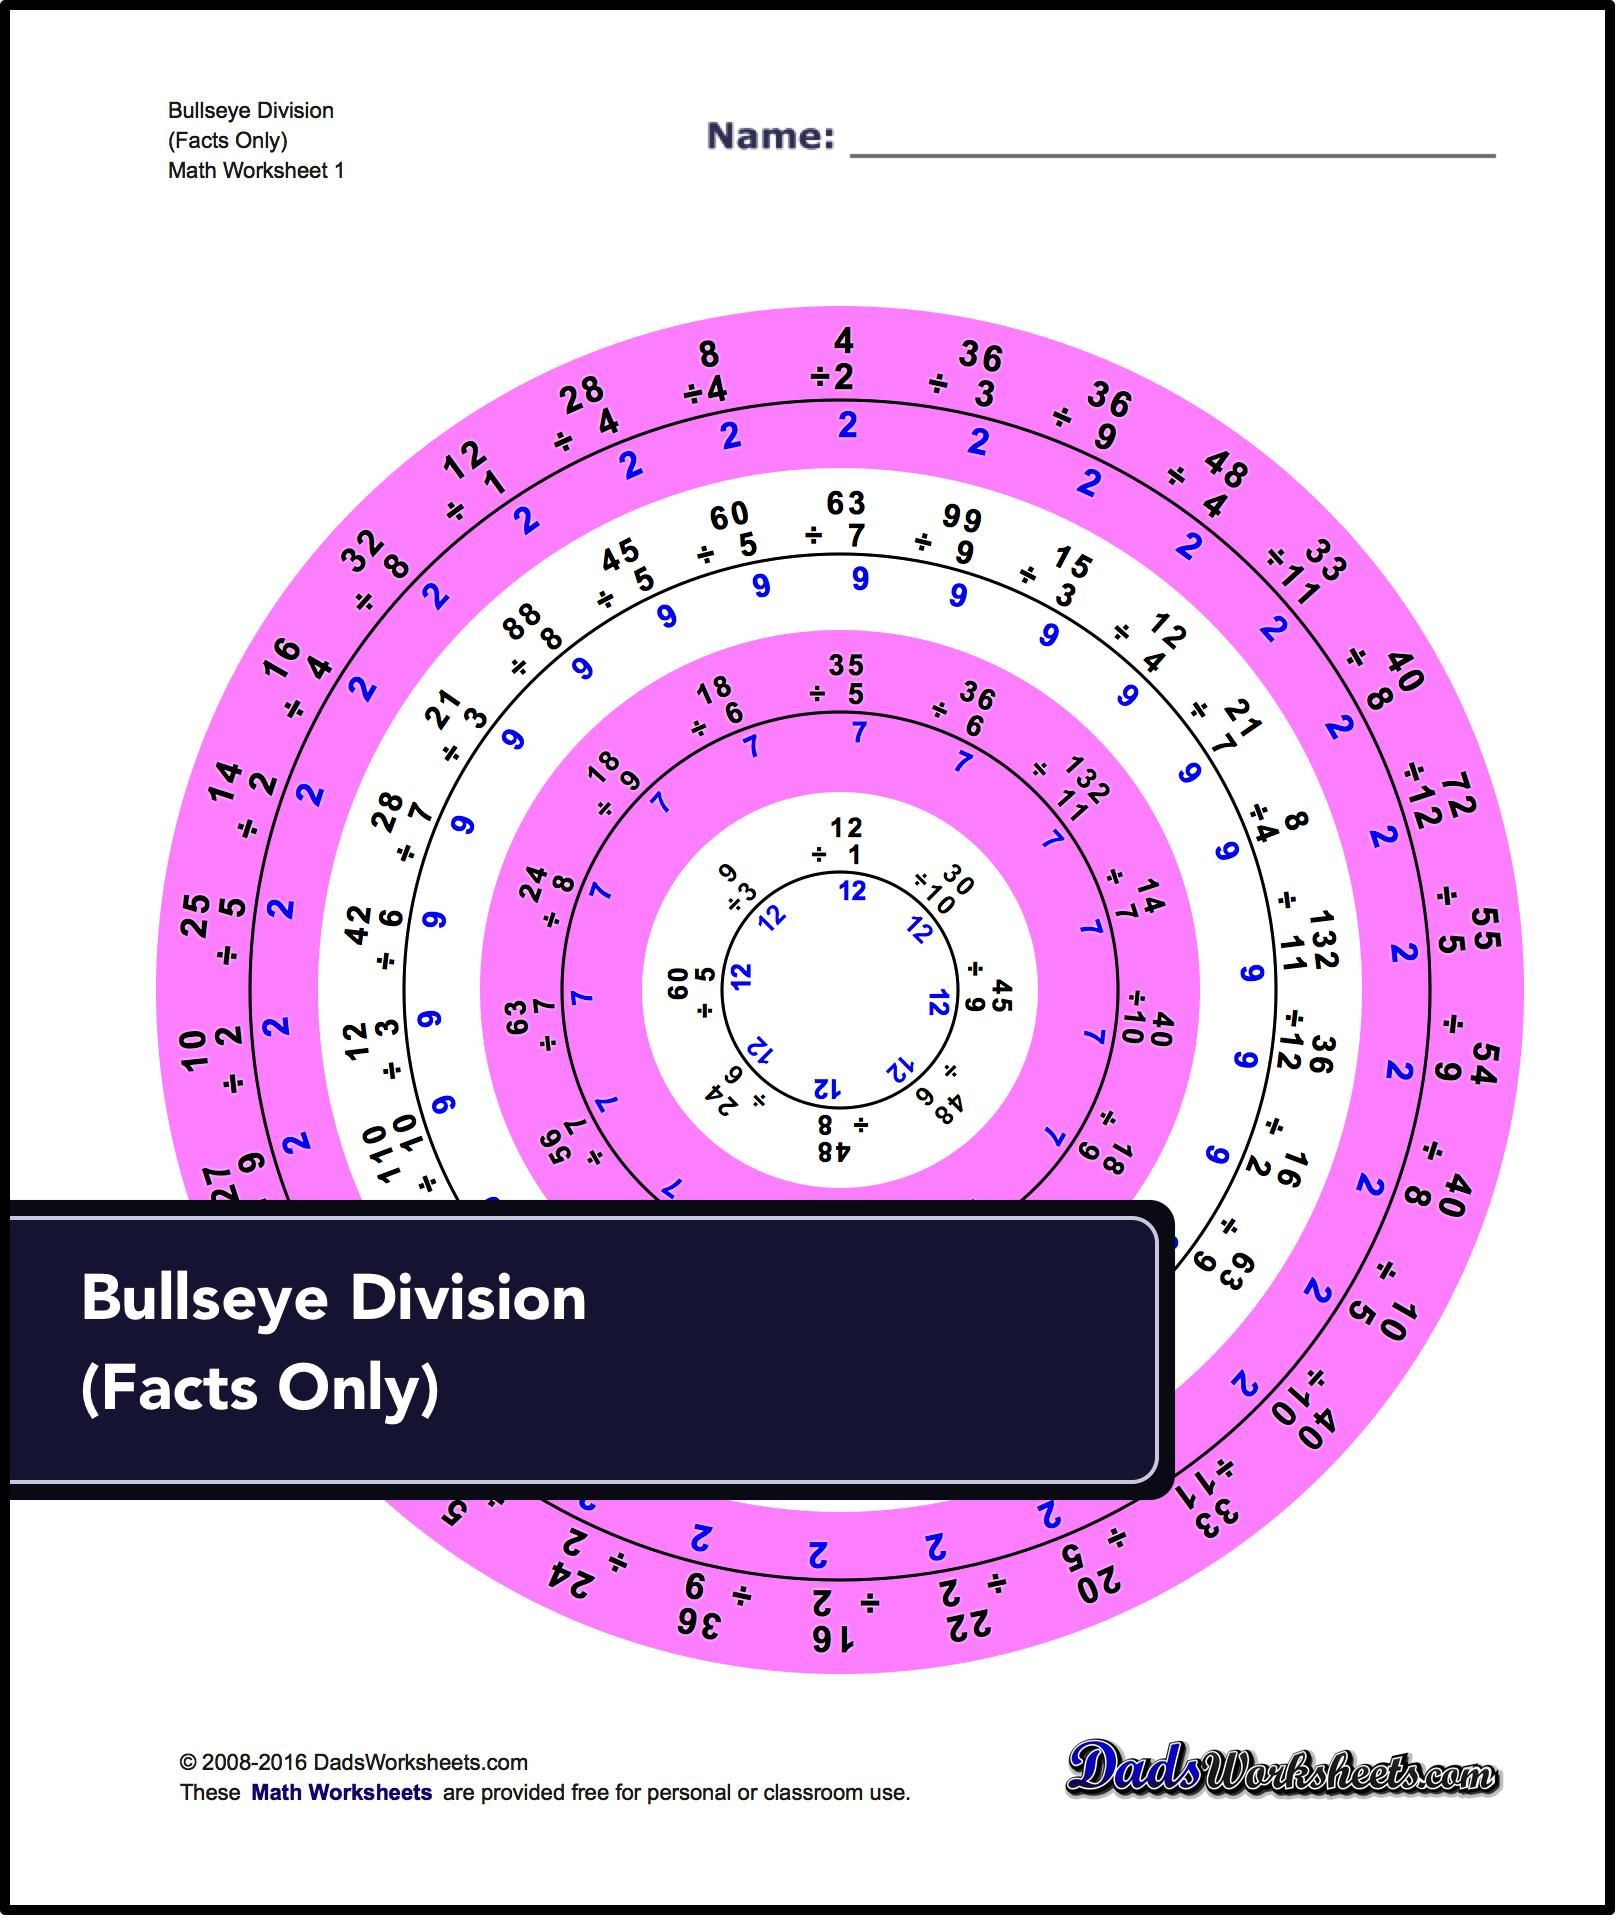 Division Worksheets For Bullseye Division Facts Only